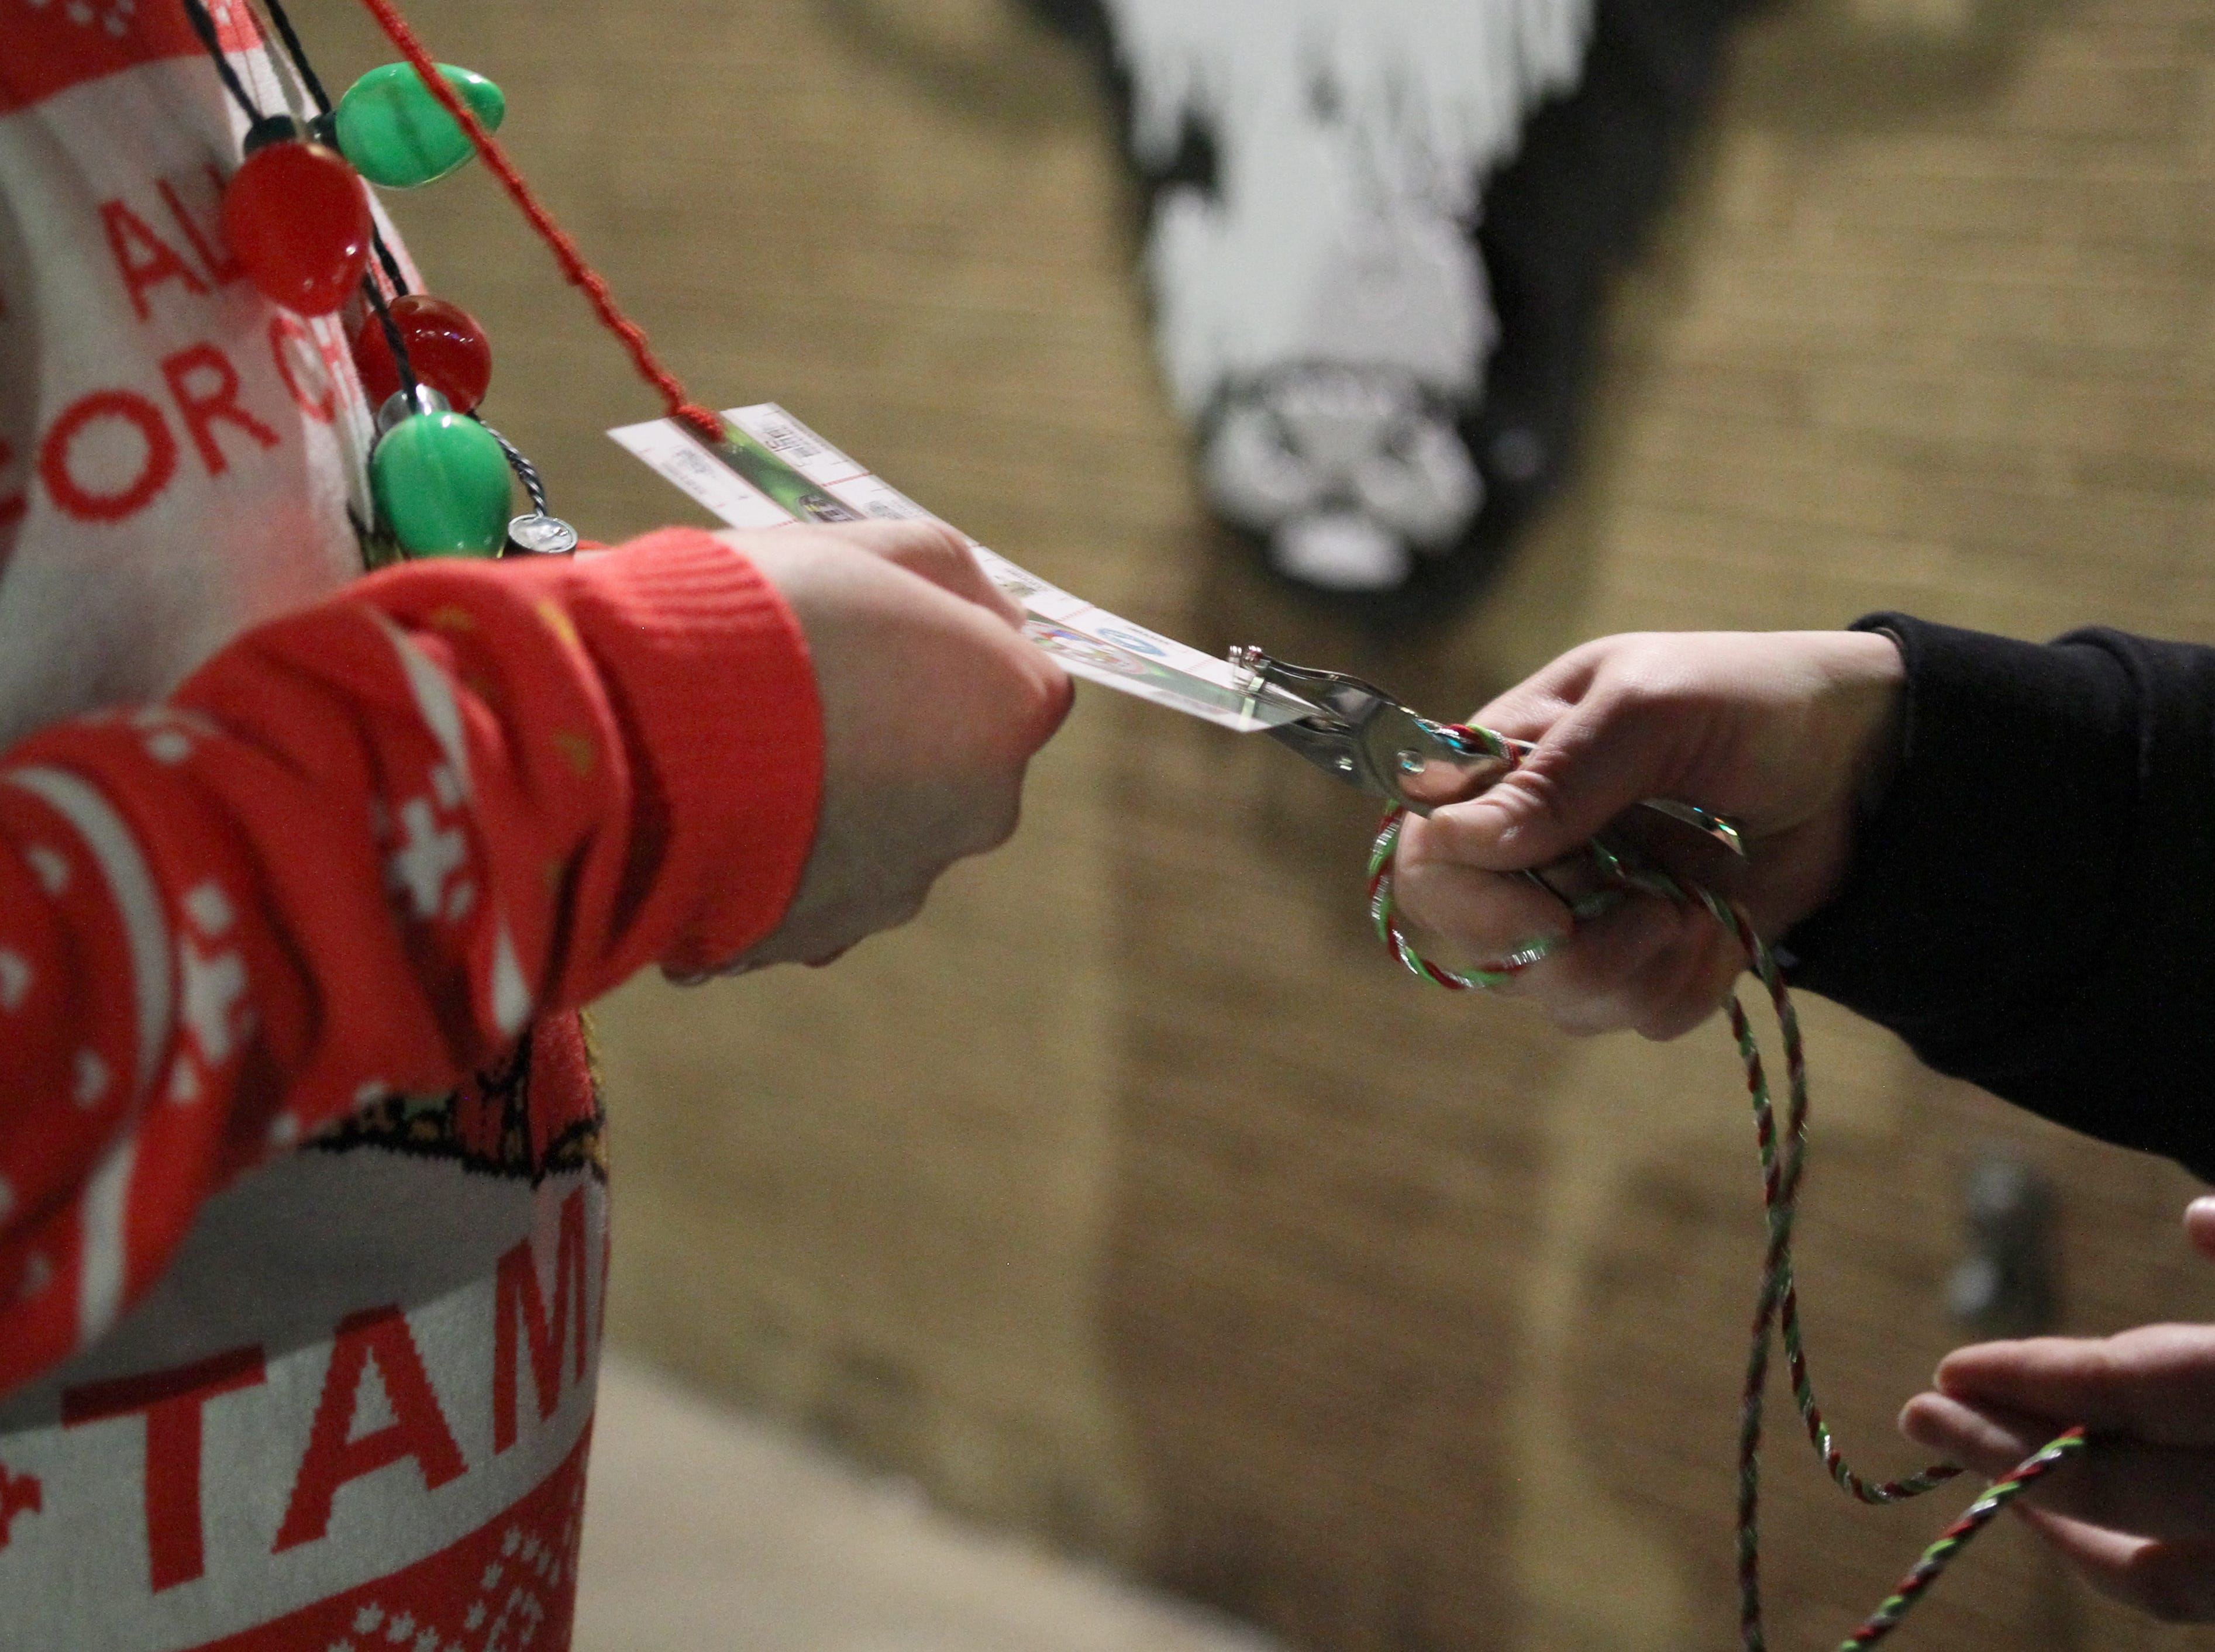 People have their cards punch at their first stop at Highlander Public House on Rudolph's First Ugly Sweater Crawl Saturday, Dec. 1, 2018, in Downtown Wichita Falls.